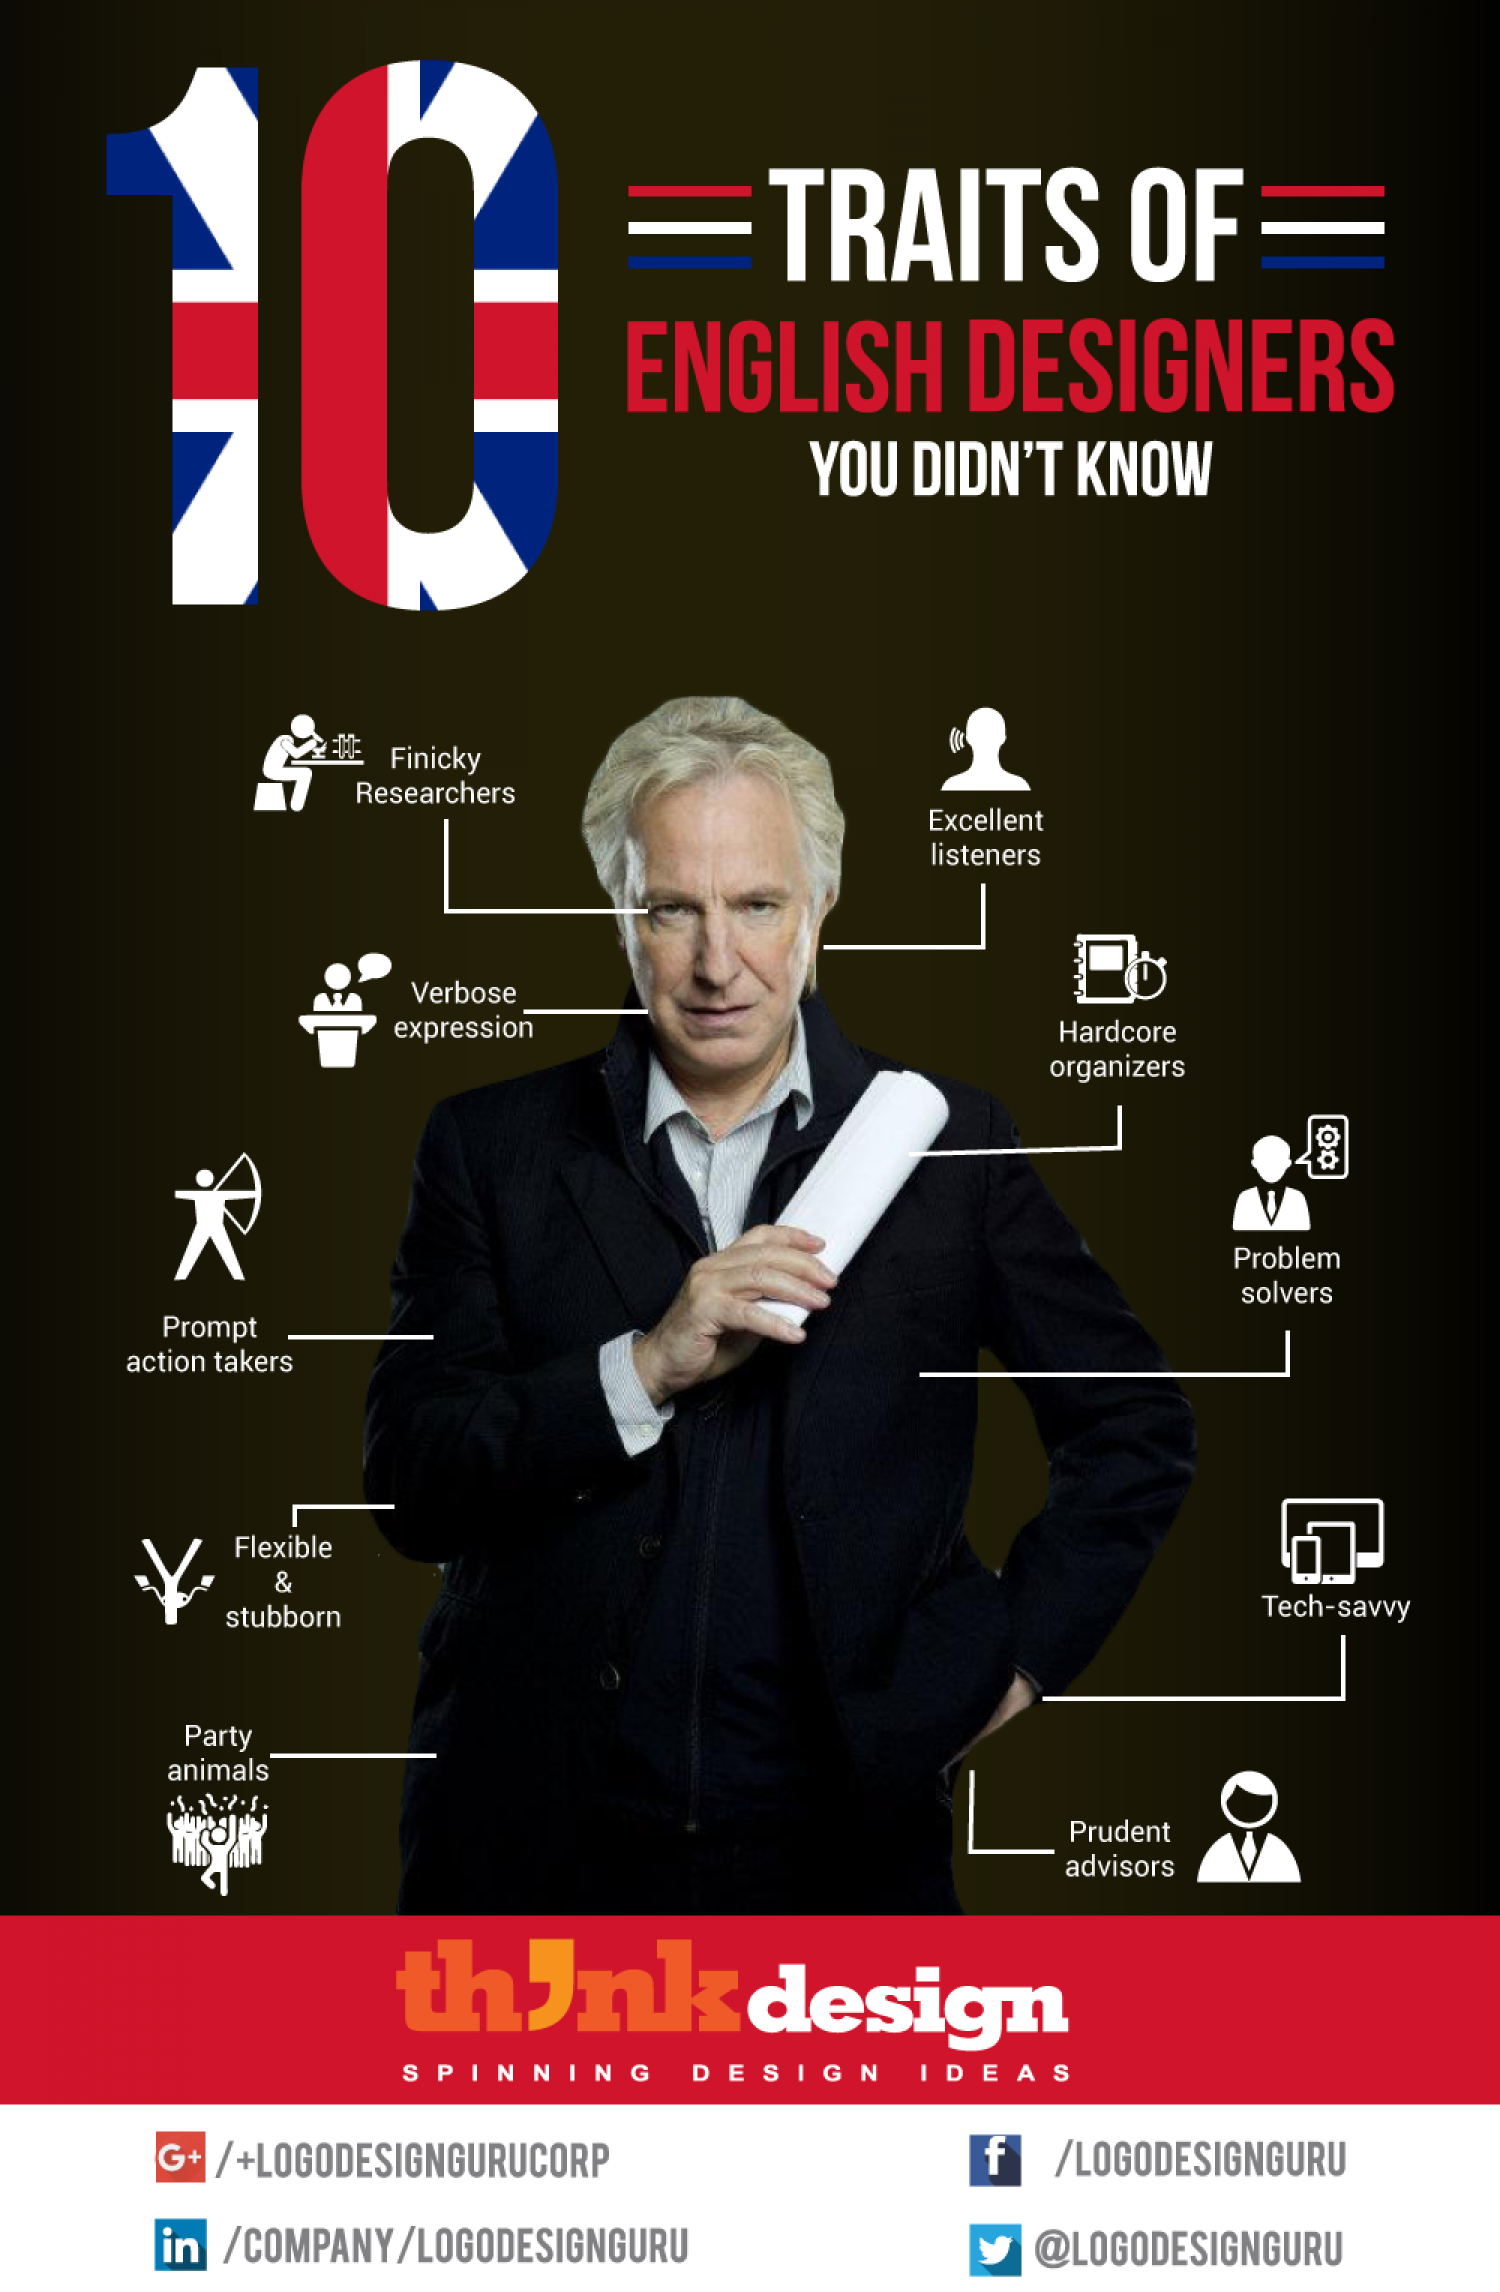 10 Traits of English Designers You Didn't Know Infographic